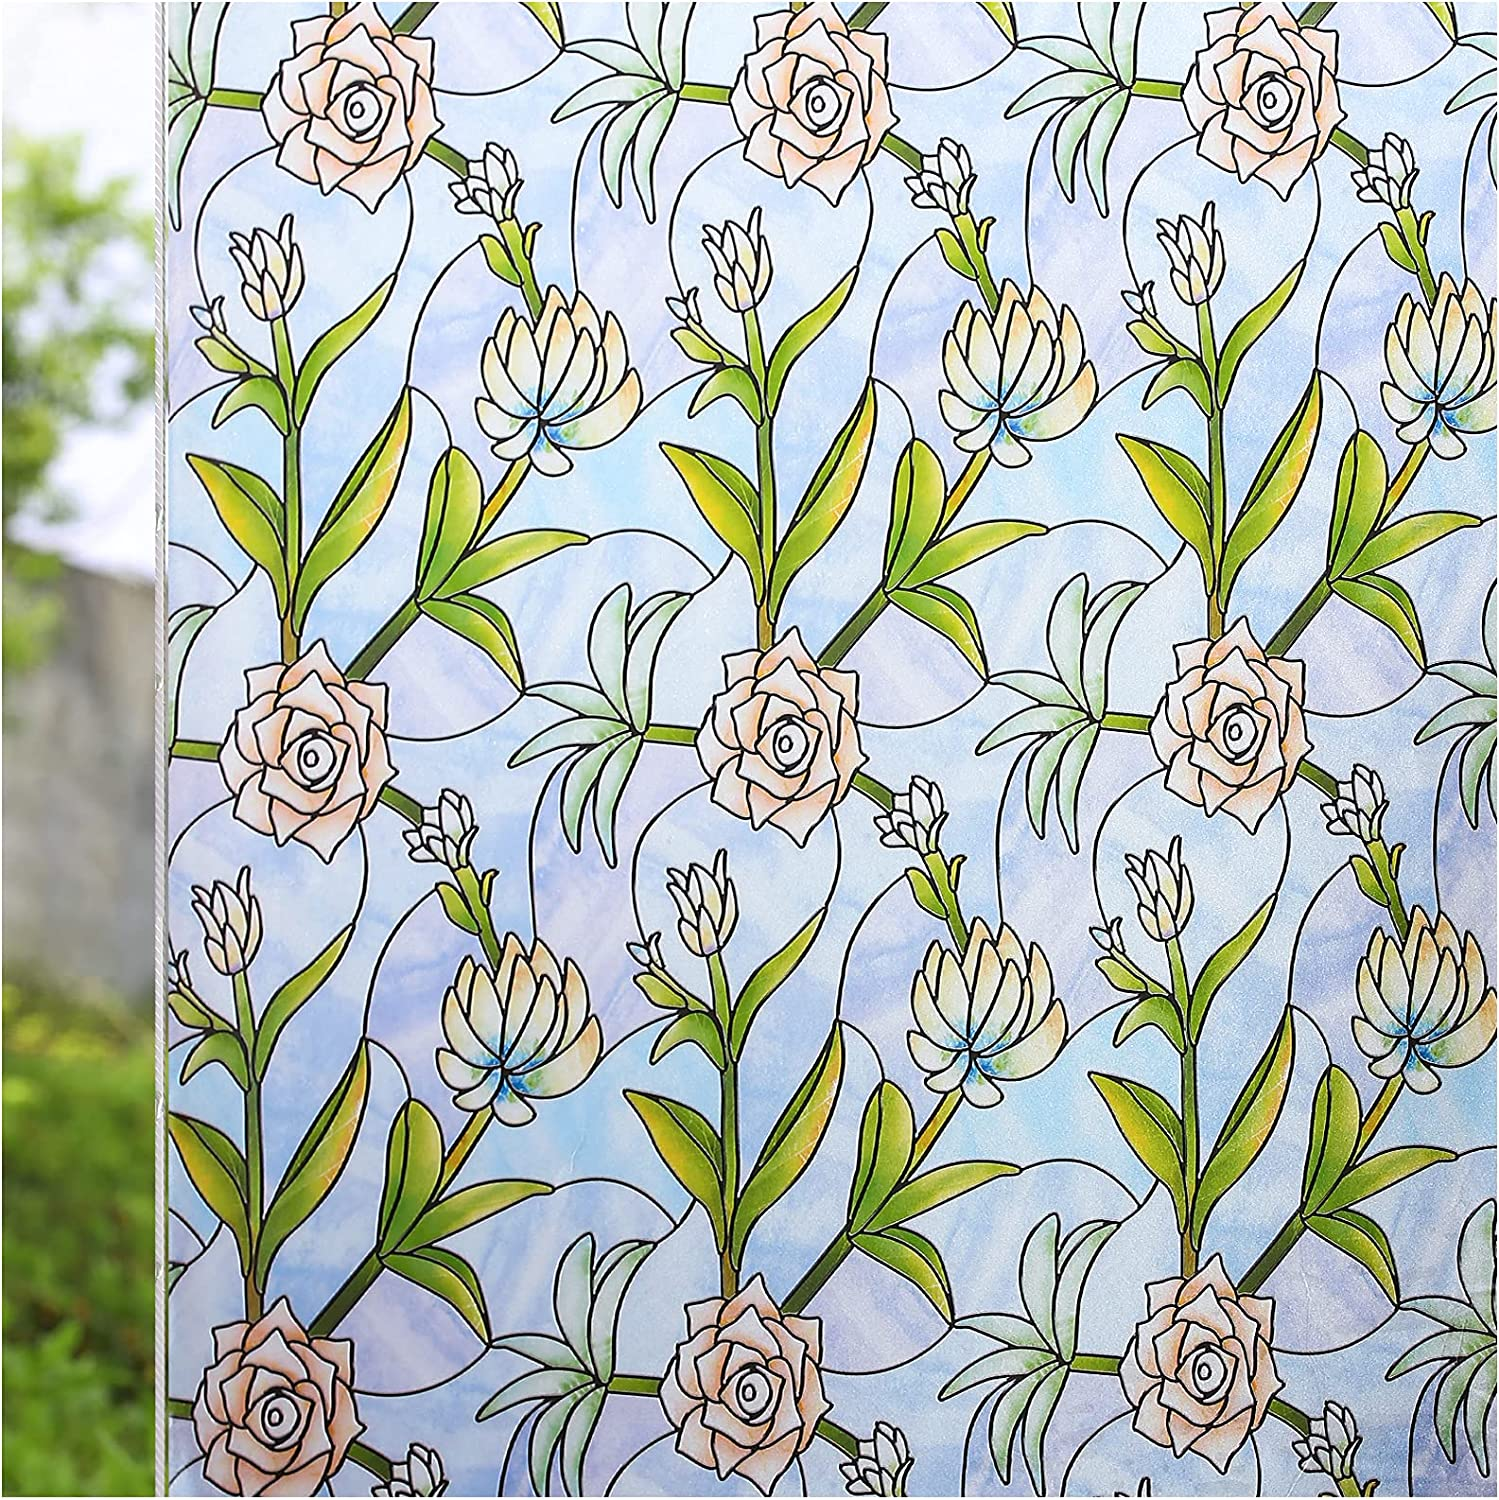 specialty shop CottonColors Window Film Privacy Adhesiv Sticker Decoration Max 40% OFF Self